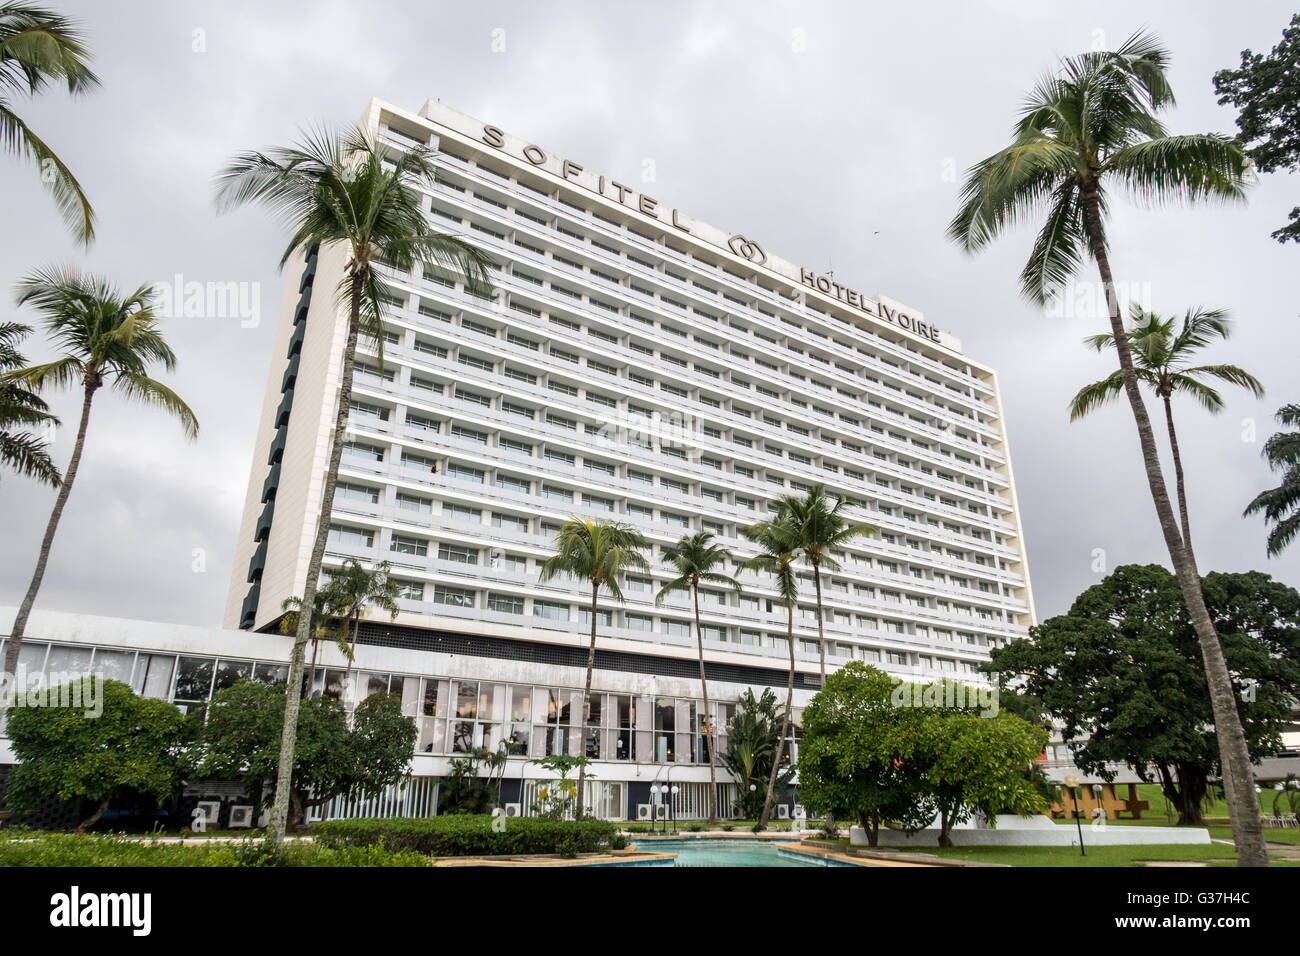 sofitel abidjan hotel ivoire c te d 39 ivoire west africa stock photo 105273292 alamy. Black Bedroom Furniture Sets. Home Design Ideas